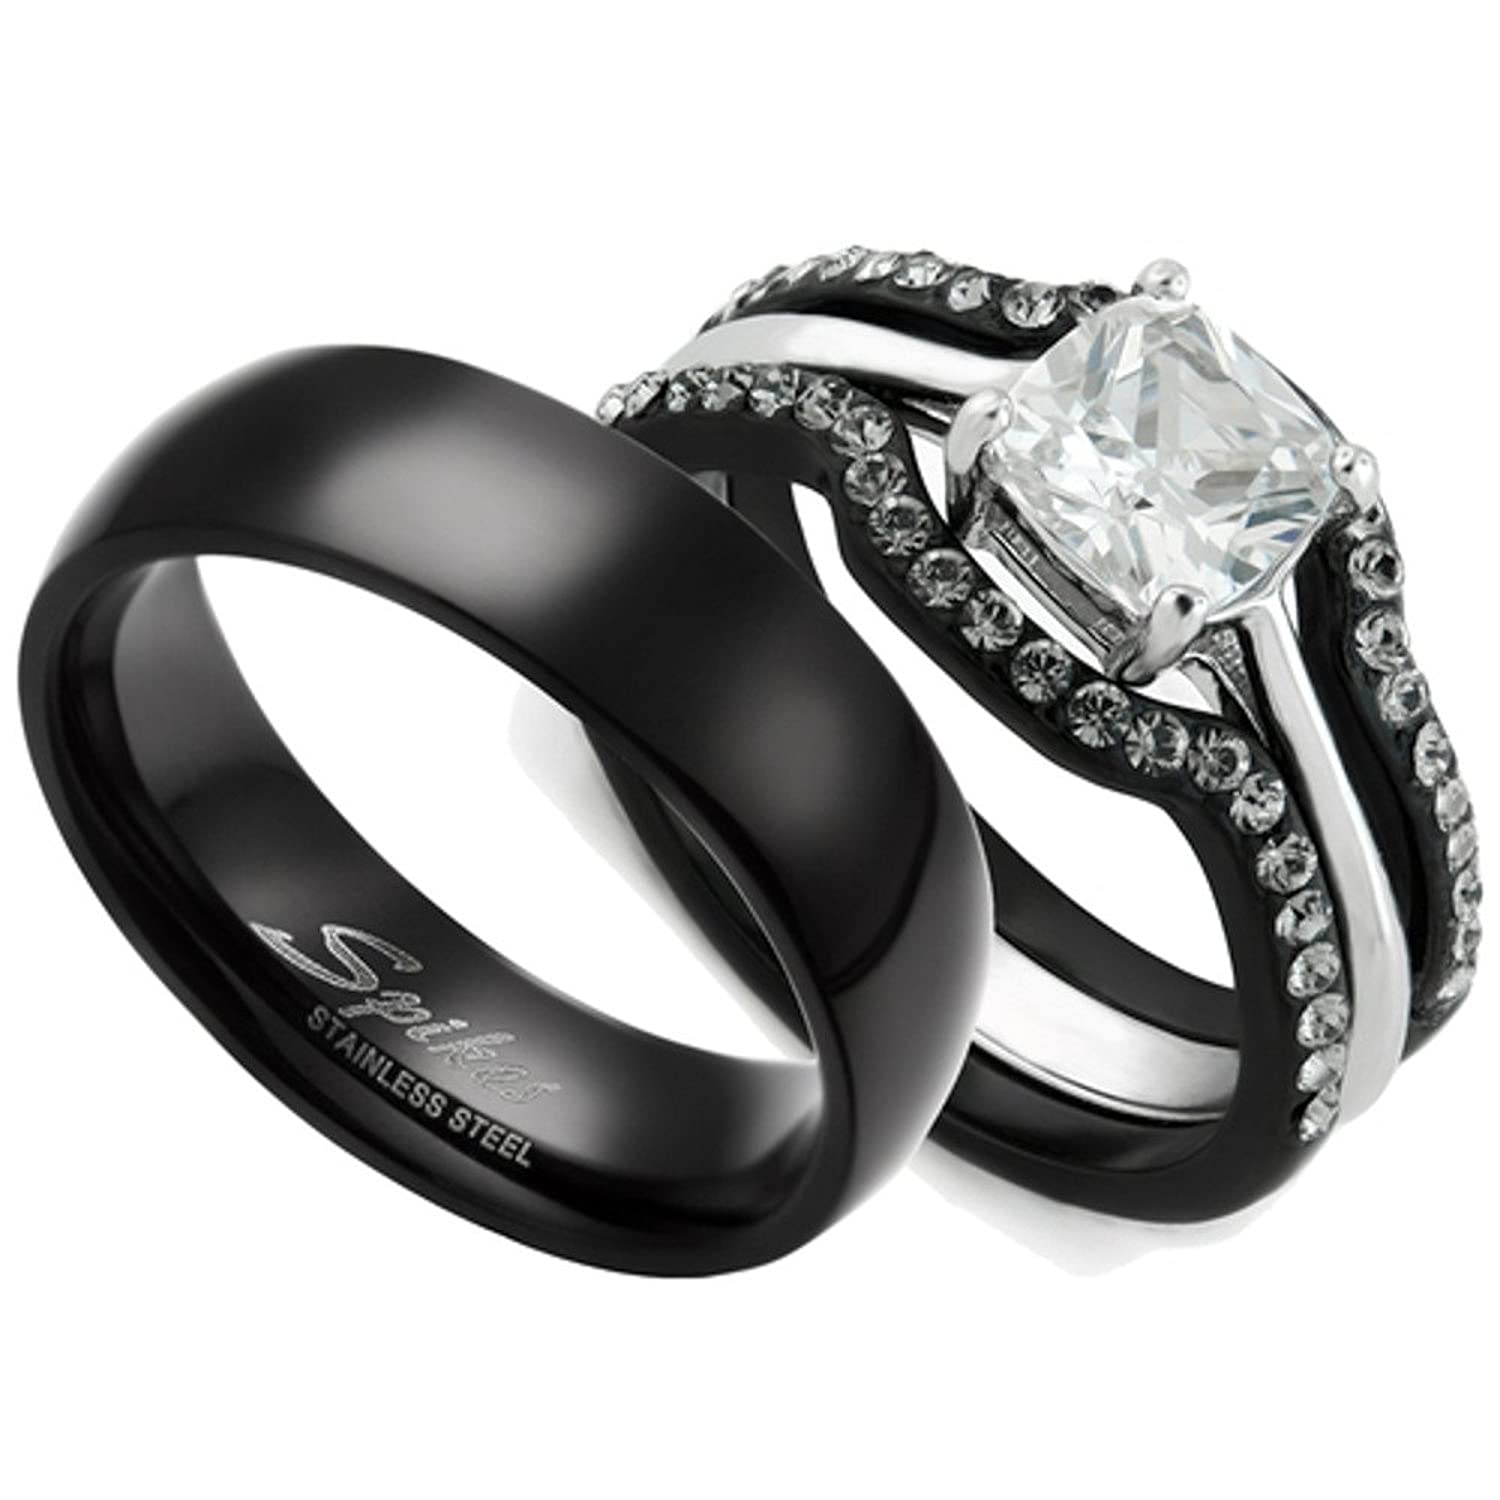 silver cz luxury tone band black elegant banded rings wedding